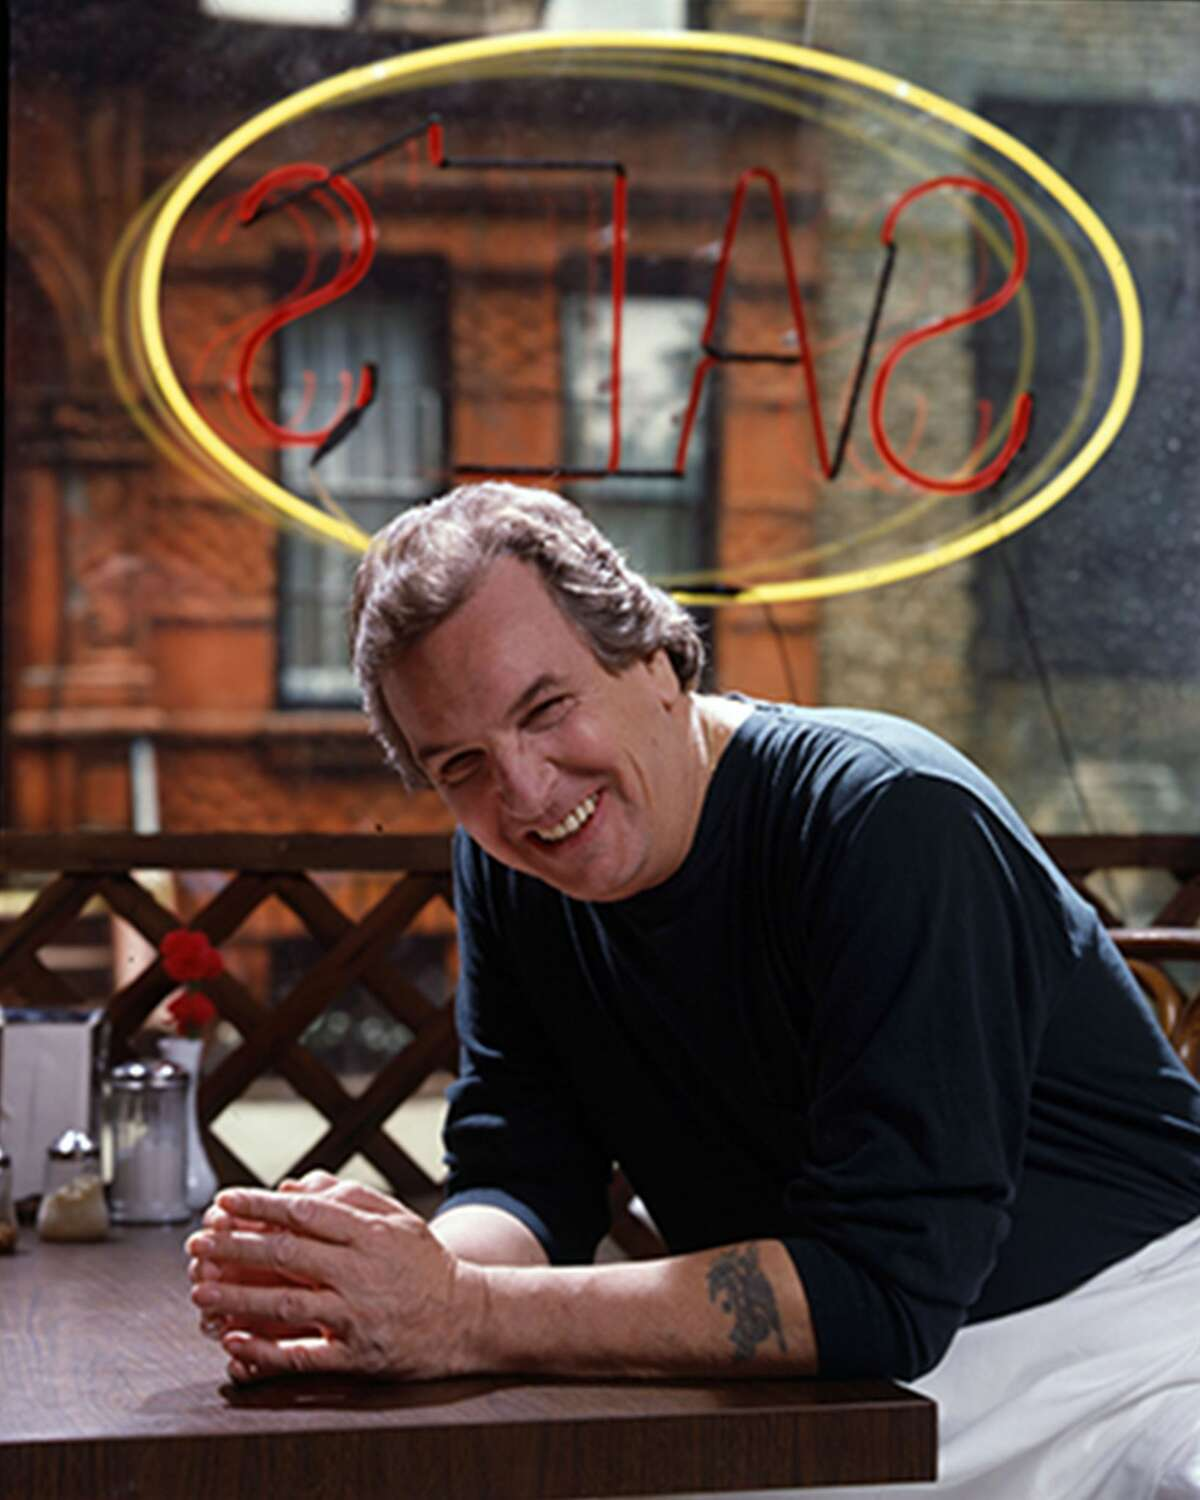 DO THE RIGHT THING (1989) Danny Aiello as Sal Aiello was nominated for a Best Supporting Actor Academy Award for his role of Sal, the owner of Sal's Famous Pizzeria where Mookie works. He becomes the center of controversy when customers demand he include a photo of a black celebrity on the wall alongside the pictures of famous Italians. Spike Lee orinally wanted Robert DeNiro to play Sal.